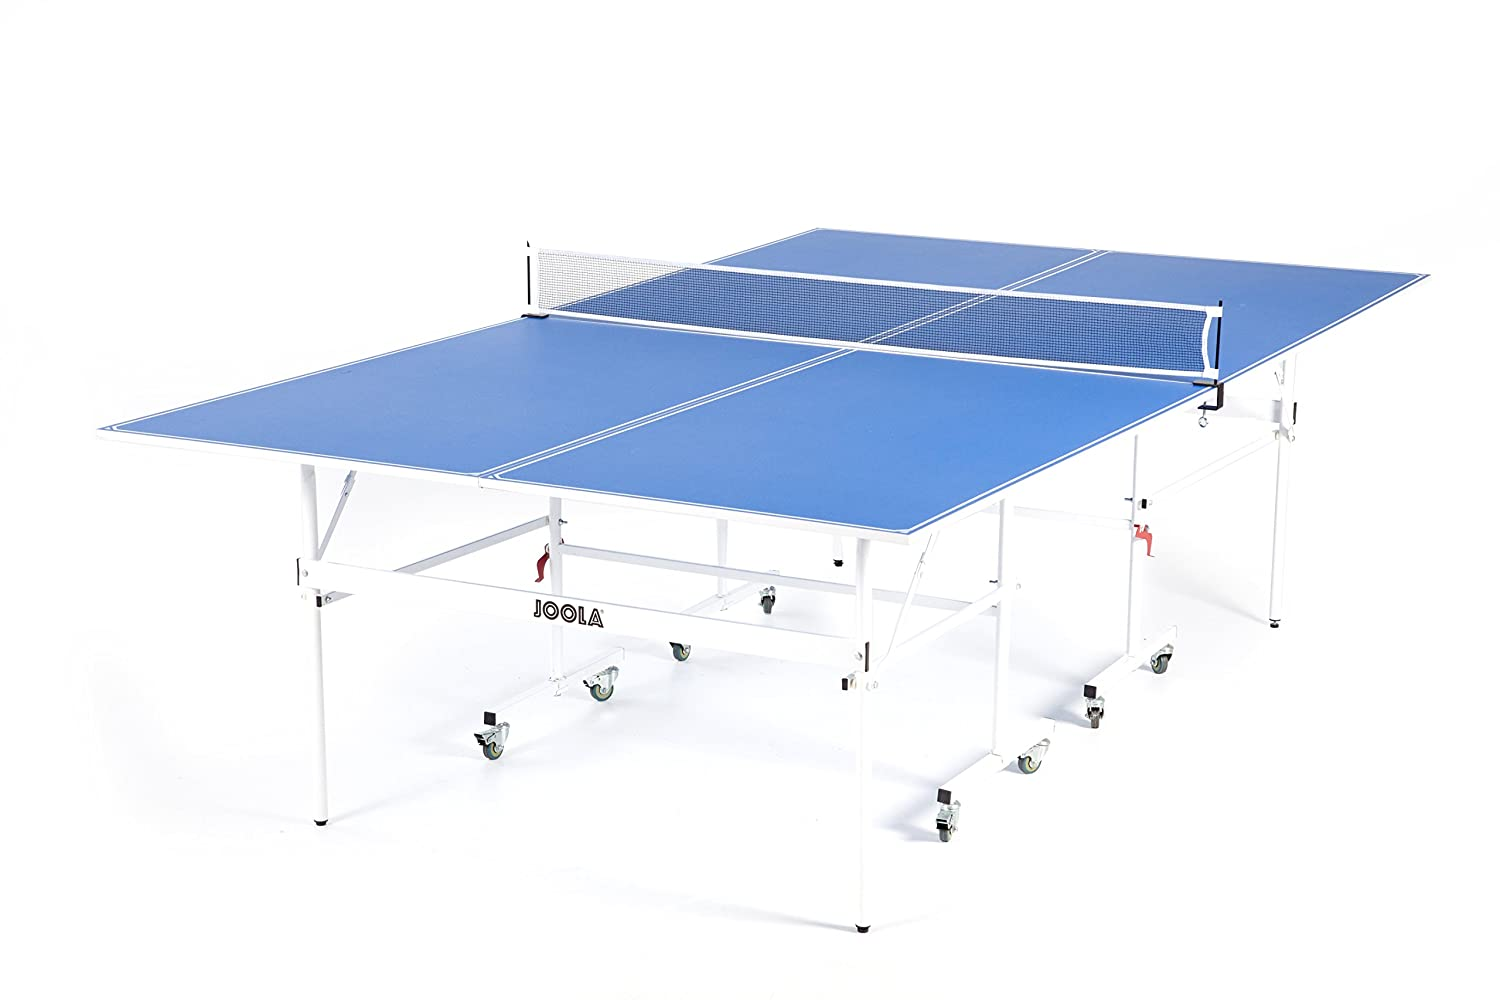 JOOLA Quadri   Indoor 15mm Ping Pong Table With Quick Clamp Ping Pong Net  Set   Single Player Playback Mode   Regulation Size Table Tennis Table    Compact ...